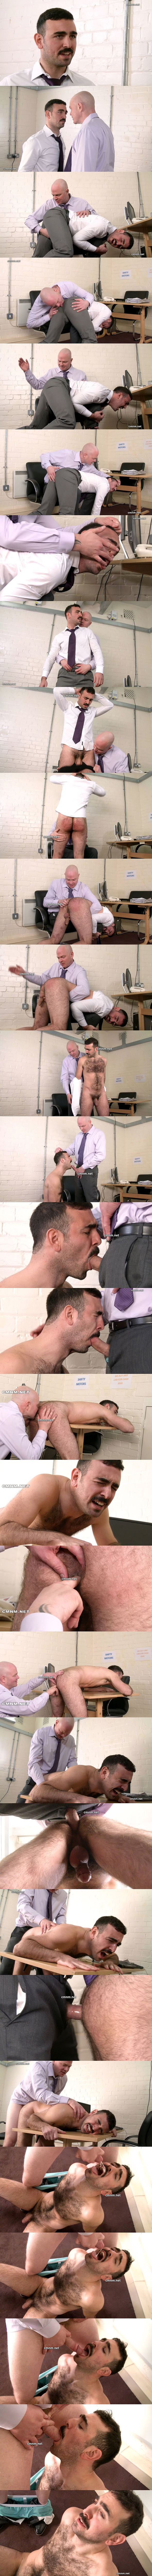 Bearded, fuzzy straight guy Pete gets his hairy bubble ass spanked, tight virgin ass fingered and fucked by Dave before Dave gives Pete a facial in Pete's bottoming debut at Cmnm 01